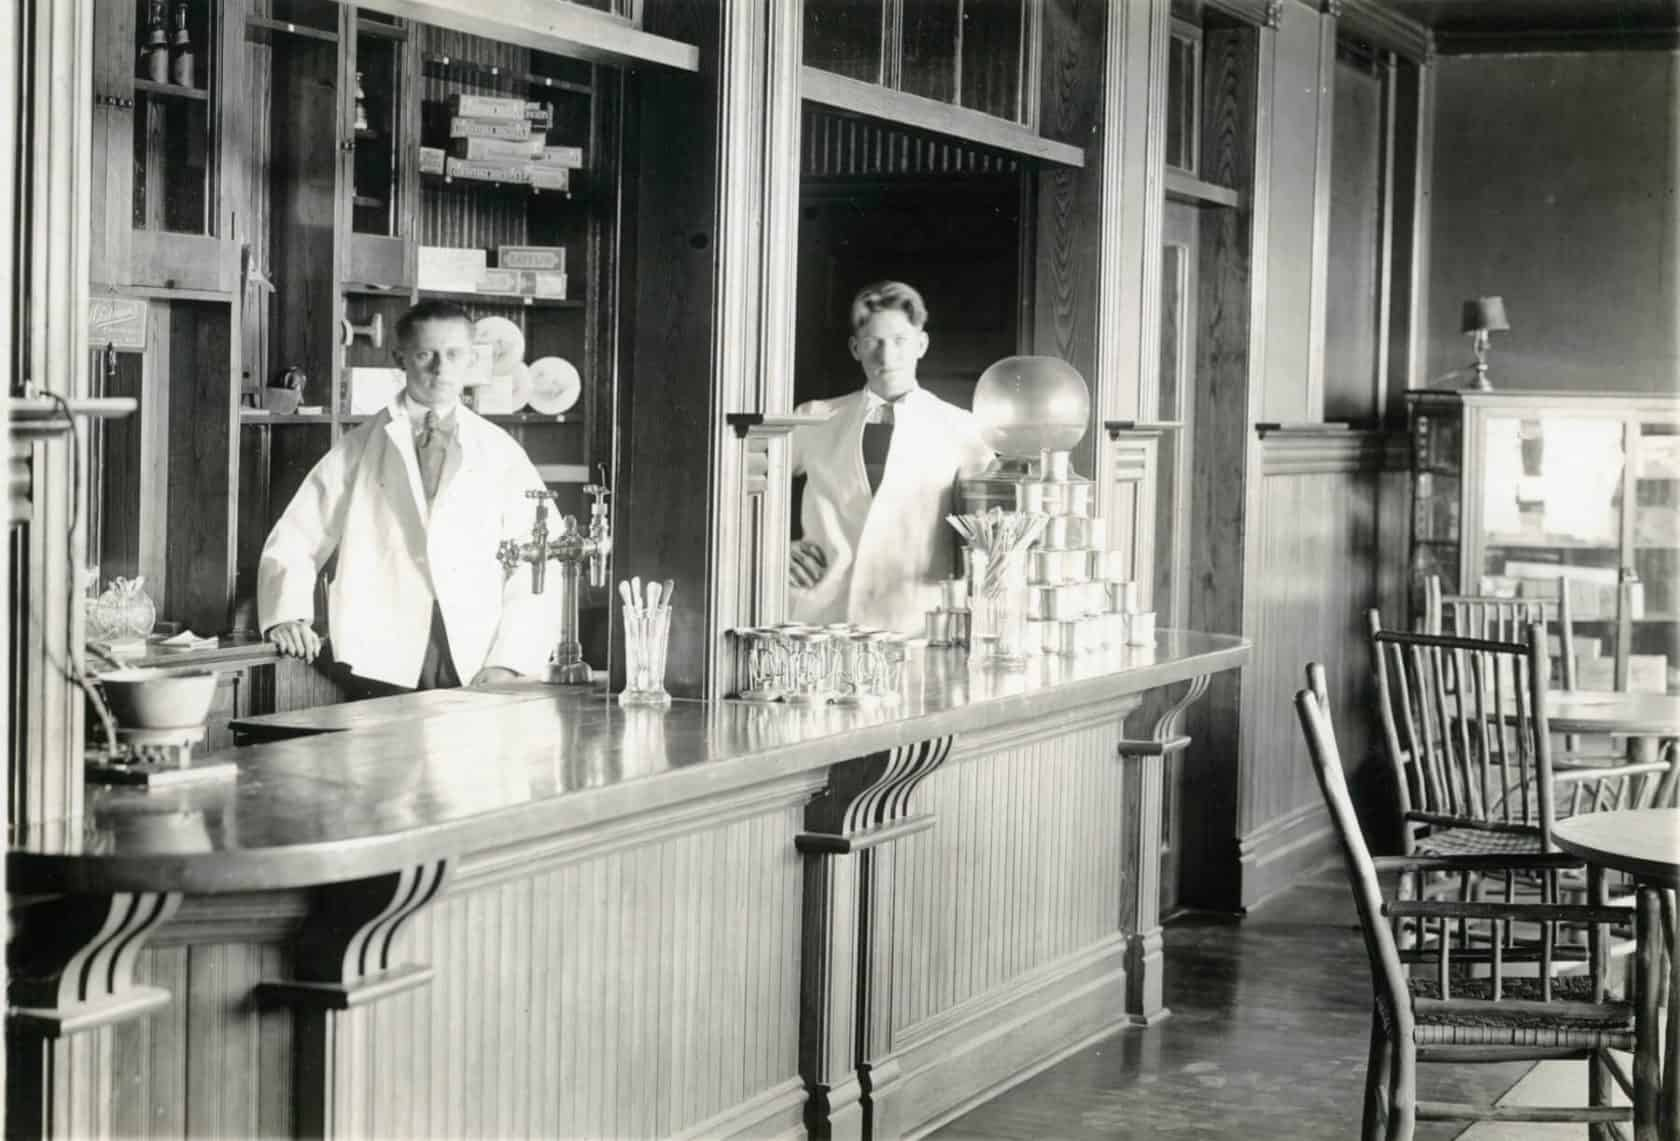 Gift Shop and Soda Fountain, 1919